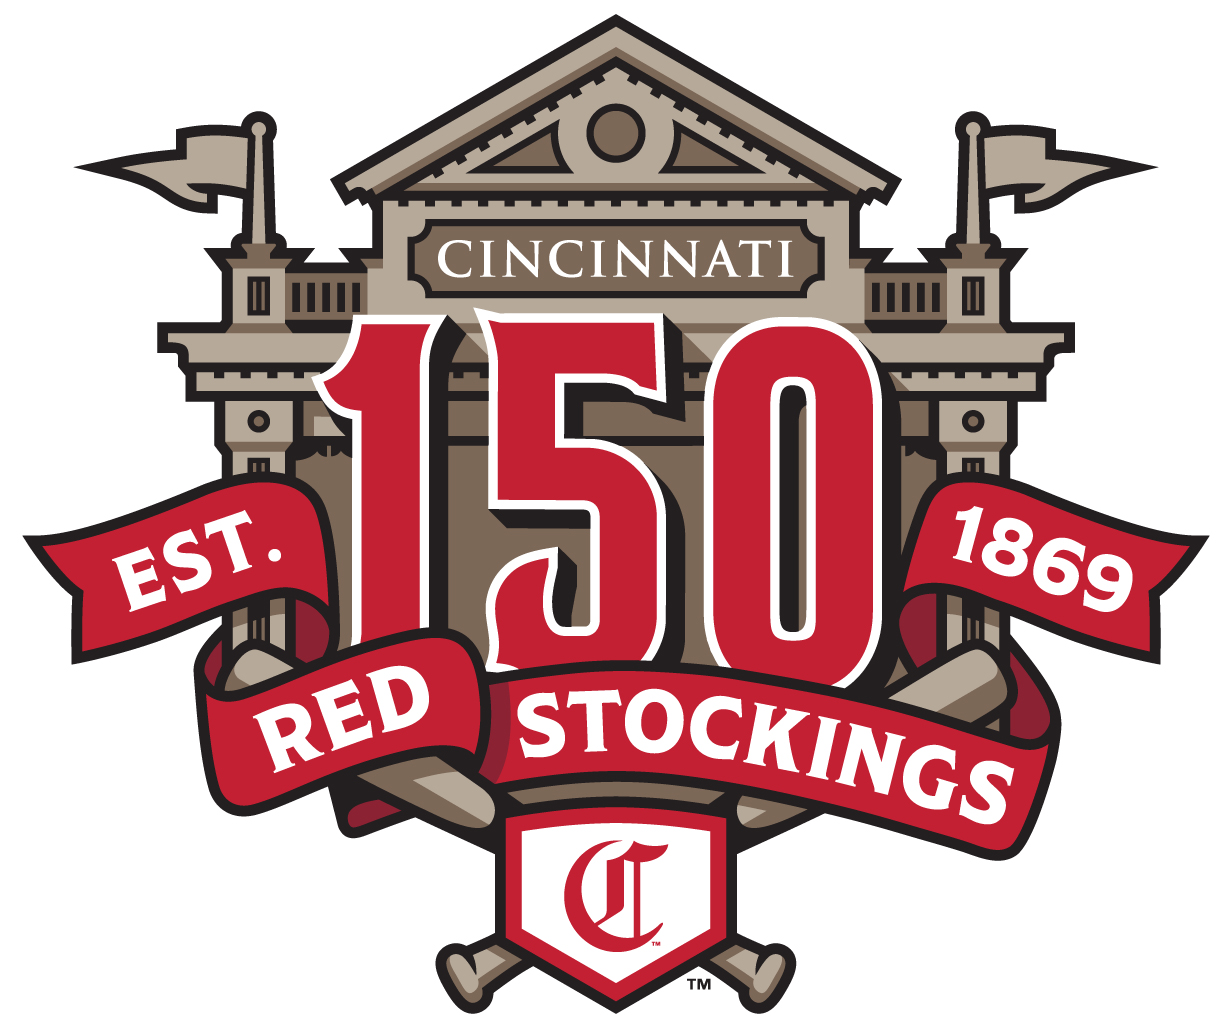 Redsfest Set For Friday, Nov. 30 and Saturday, Dec. 1